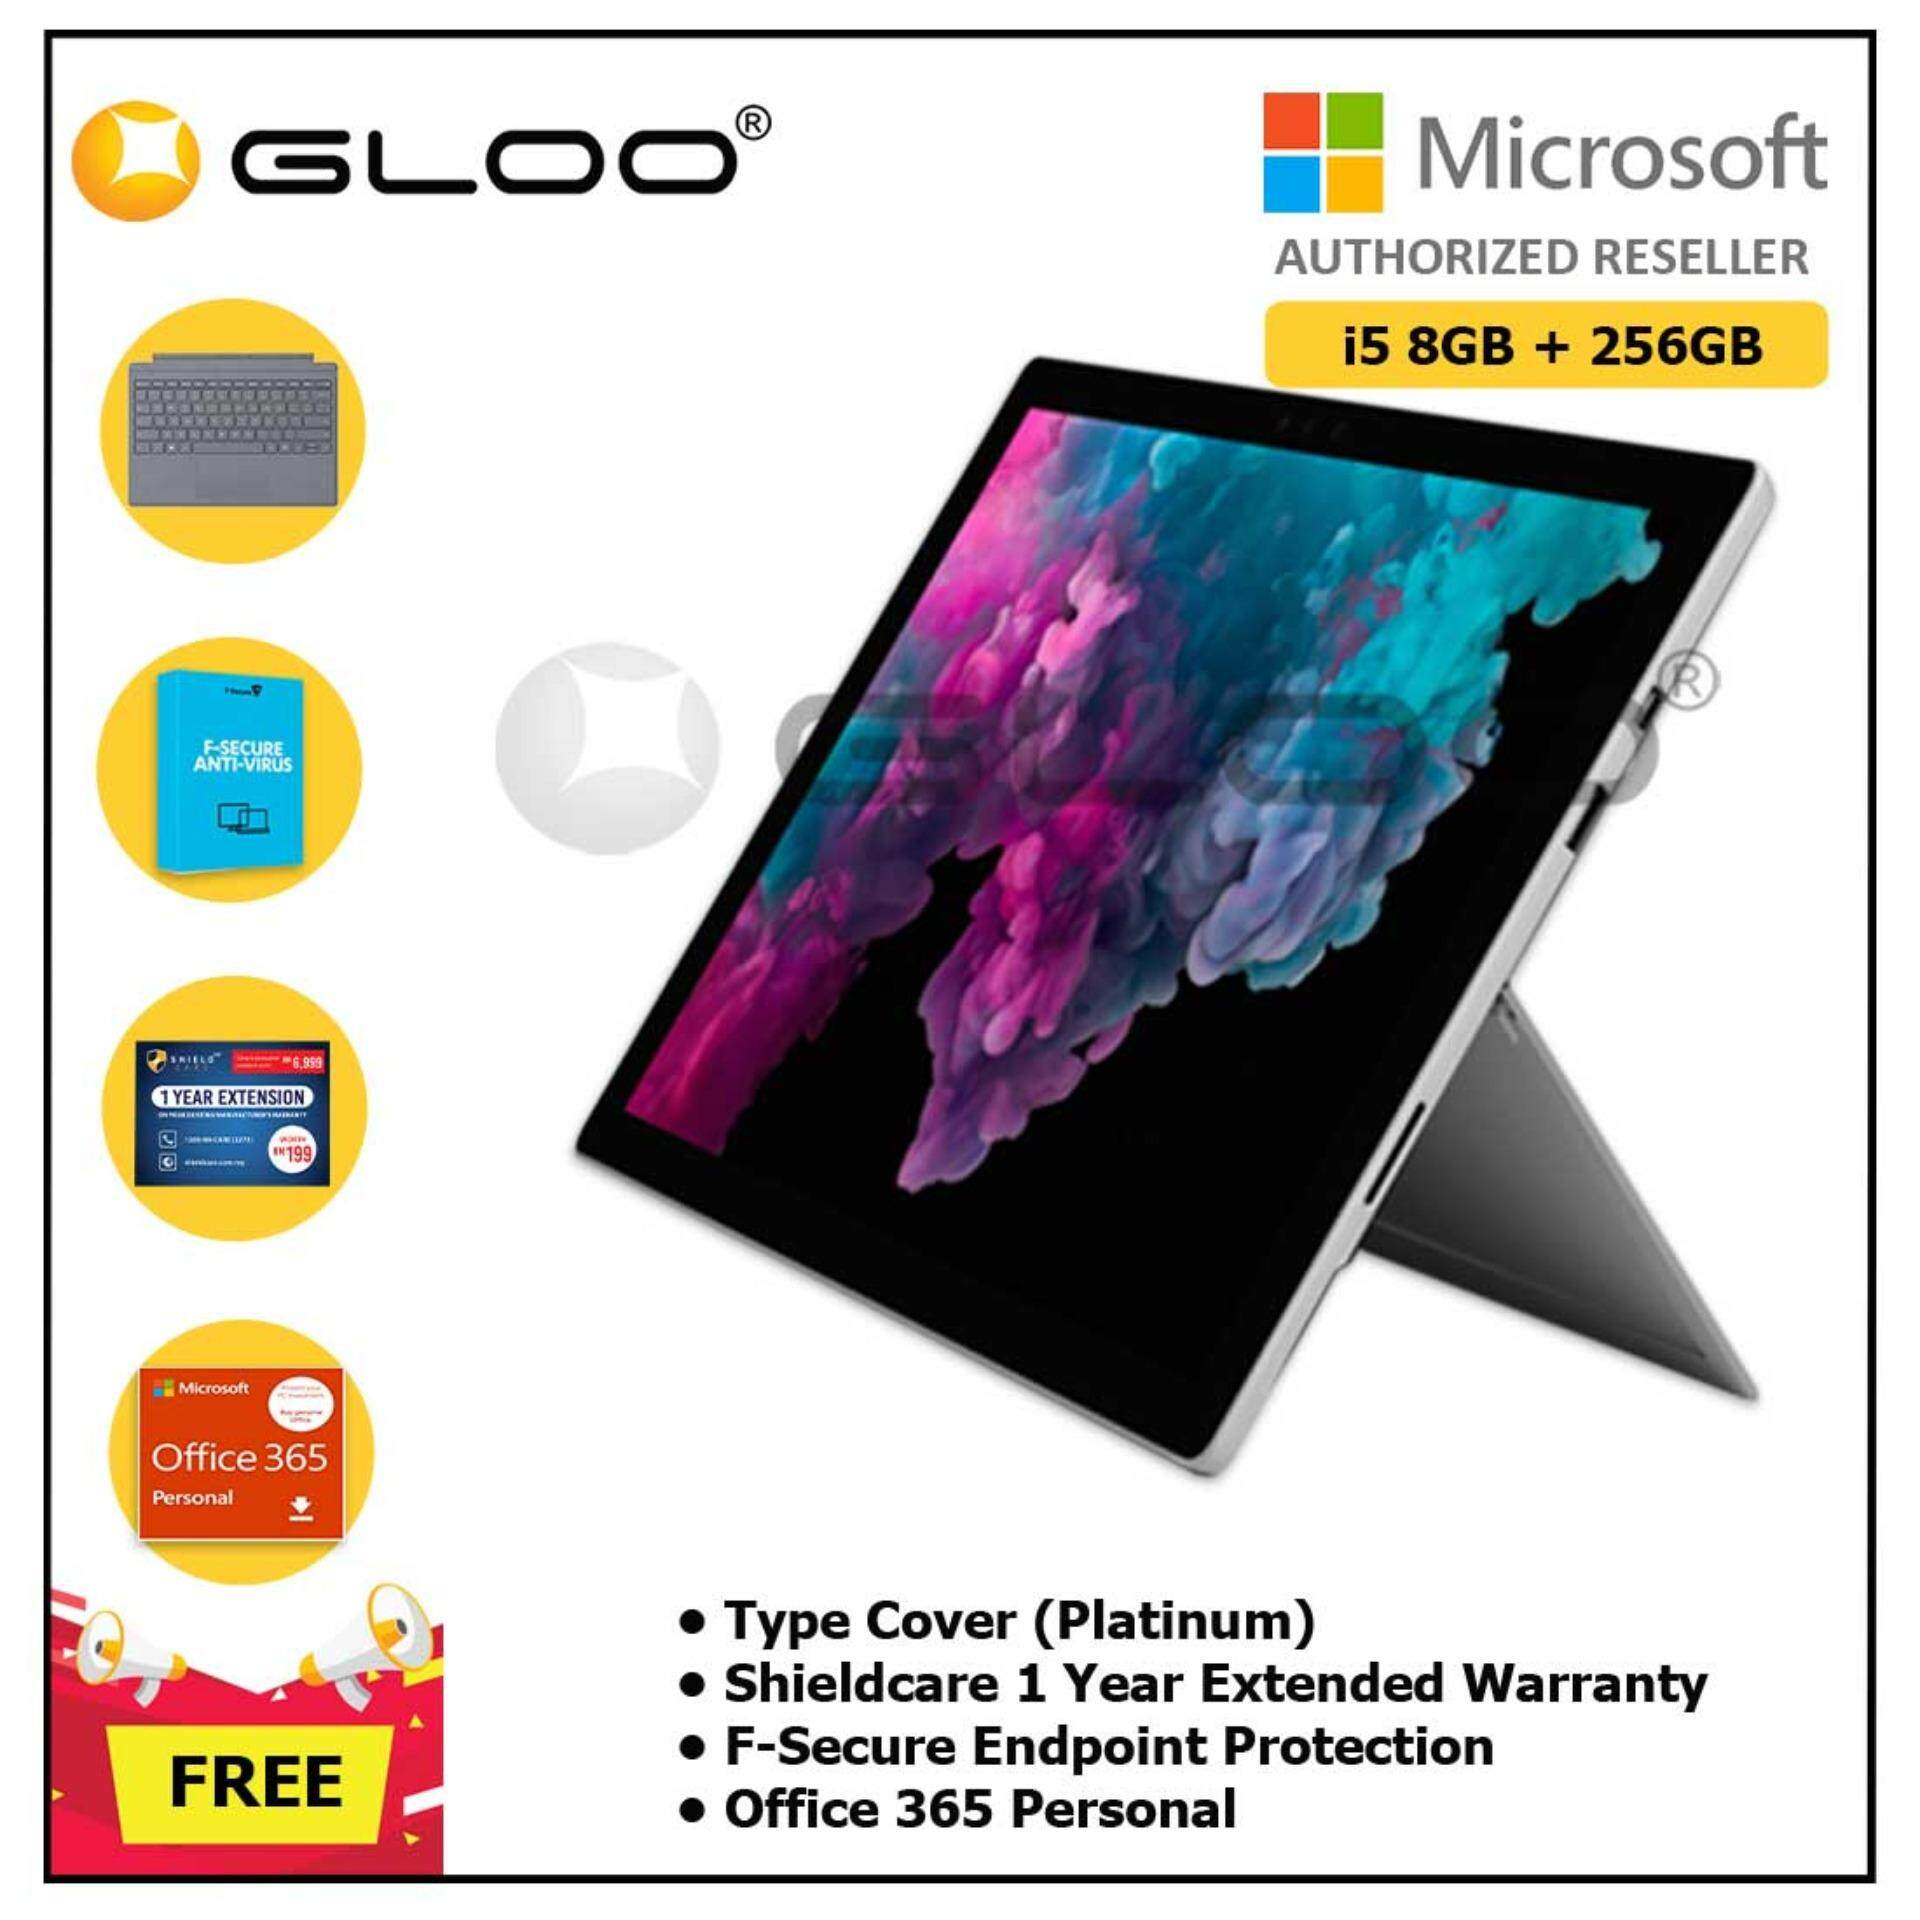 NEW Microsoft Surface Pro 6 Core i5/8GB RAM - 256GB + Type Cover Platinum + Shieldcare 1 Year Extended Warranty + F-Secure Endpoint Protection + Office 365 Personal